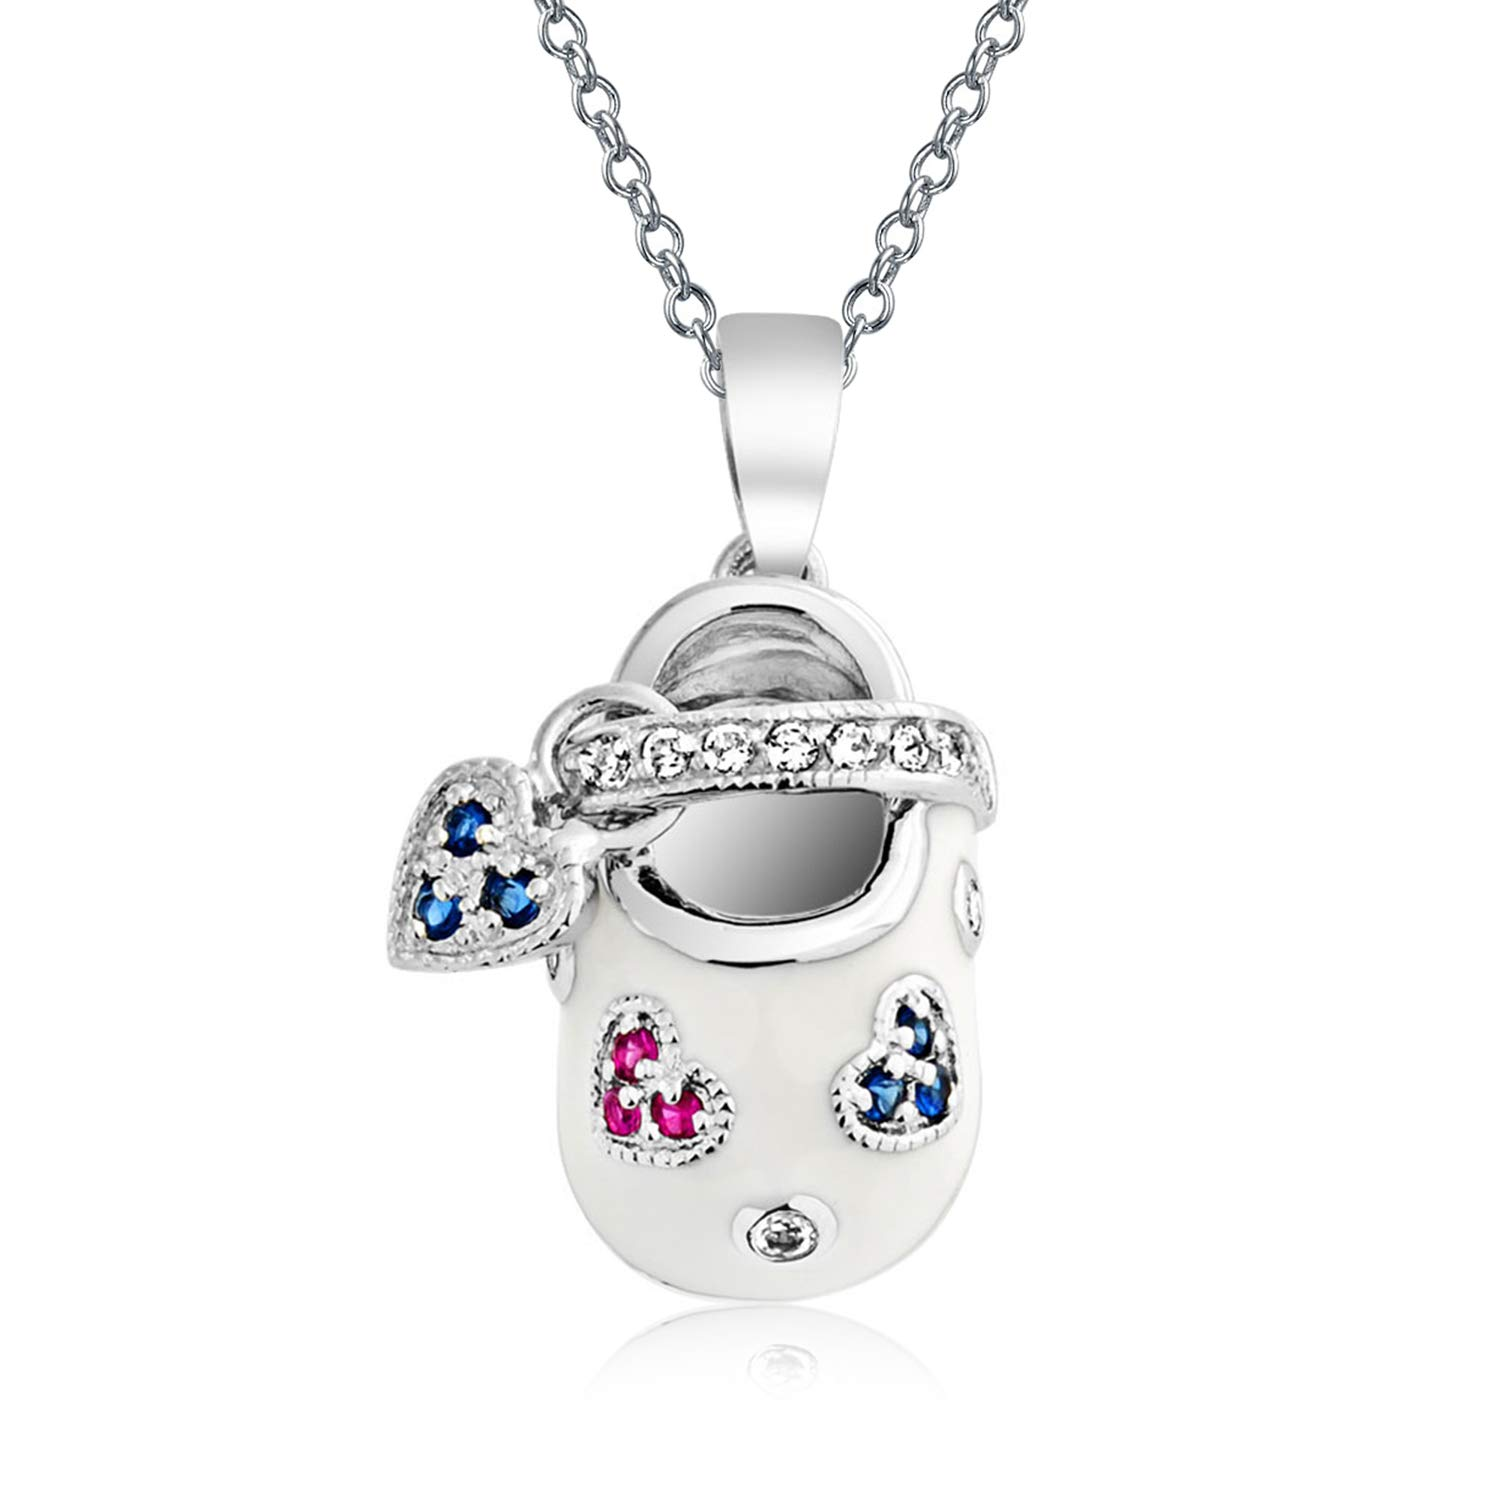 Engravable Baby Shoe Charm Pendant Necklace Gift For New Mother Women White Red Blue CZ Heart Engravable Sterling Silver